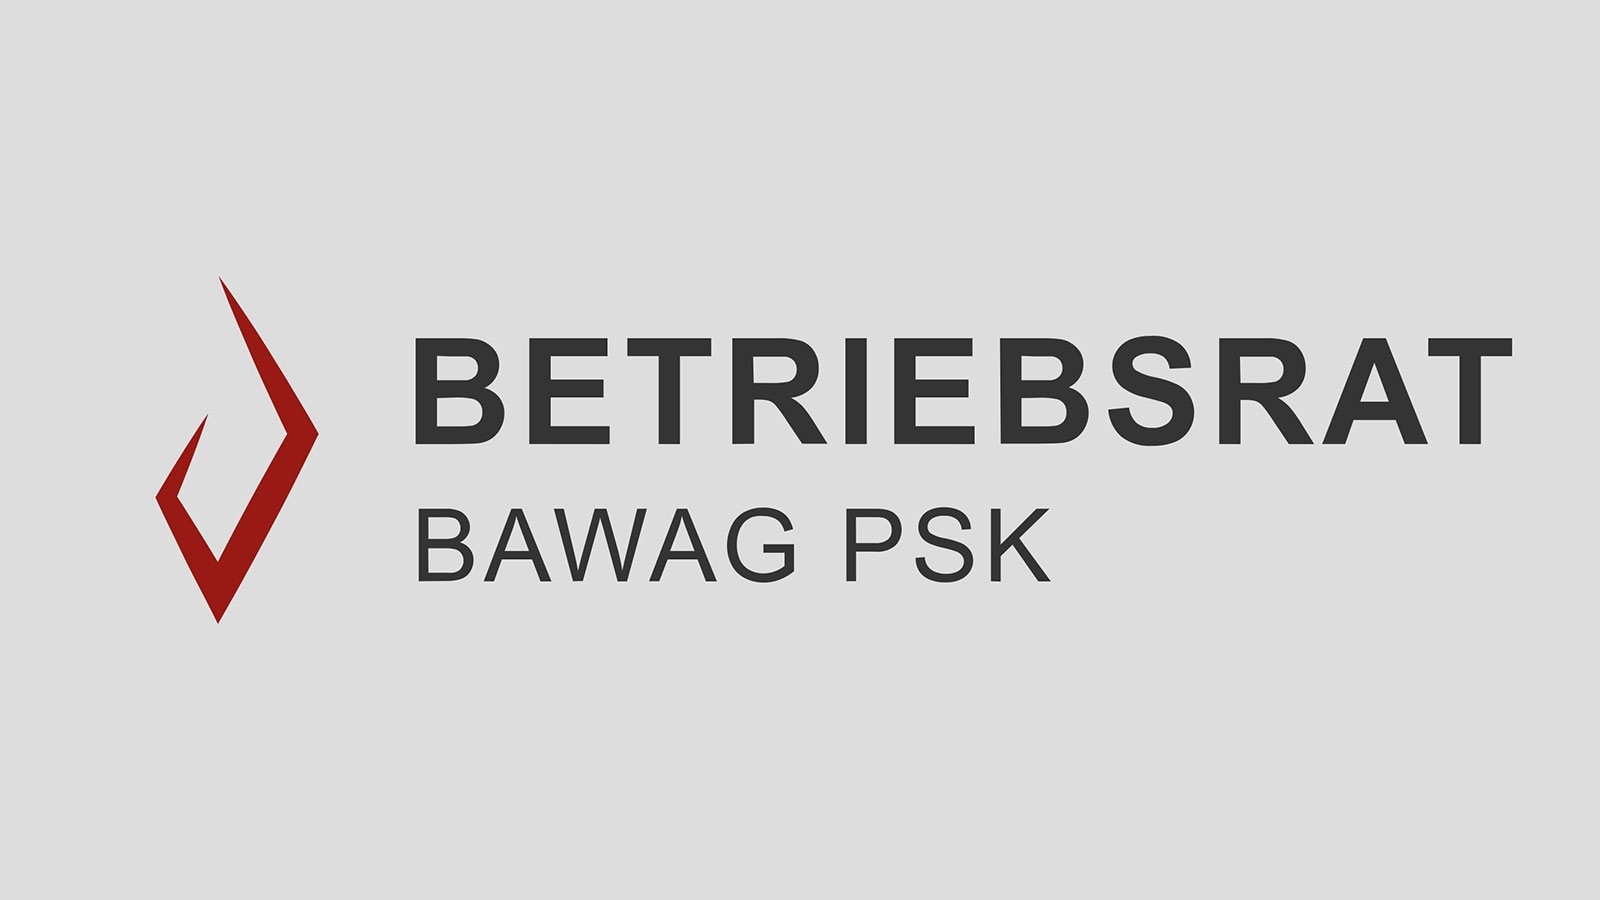 BAWAG PSK Betriebsrat | bawagpsk-betriebsrat.at | 2017 (Logo) © echonet communication